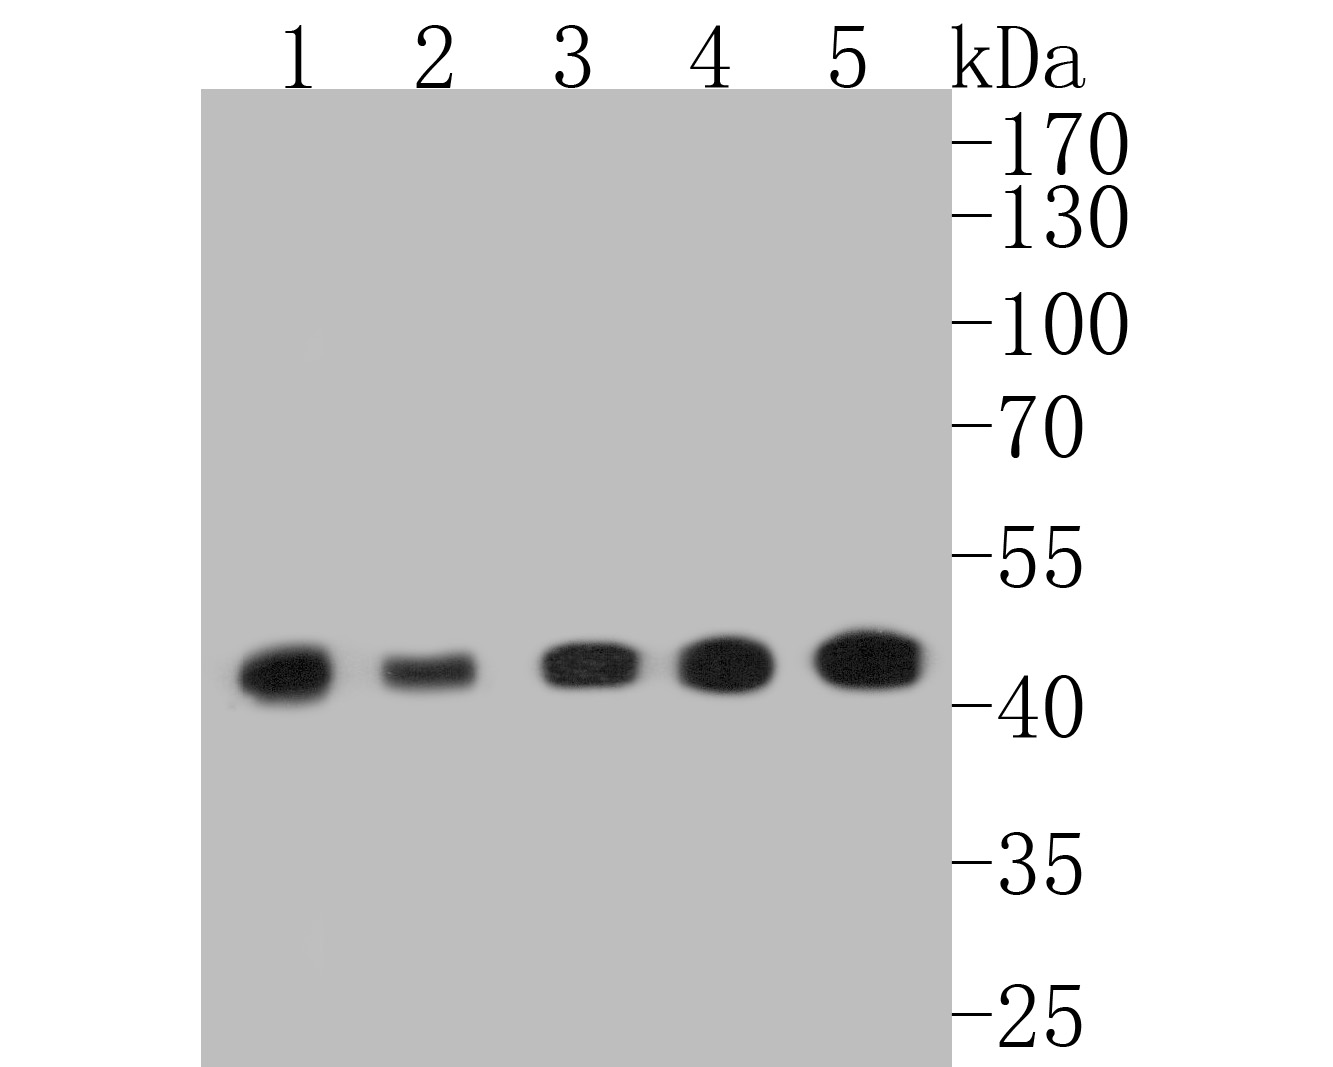 Western blot analysis of alpha smooth muscle Actin on different lysates. Proteins were transferred to a PVDF membrane and blocked with 5% BSA in PBS for 1 hour at room temperature. The primary antibody (ET1607-53, 1/500) was used in 5% BSA at room temperature for 2 hours. Goat Anti-Rabbit IgG - HRP Secondary Antibody (HA1001) at 1:5,000 dilution was used for 1 hour at room temperature. Positive control:  Lane 1: A431 cell lysate Lane 2: Hela cell lysate Lane 3: NIH/3T3 cell lysate Lane 4: mouse heart tissue lysate Lane 5: mouse smooth muscle tissue lysate